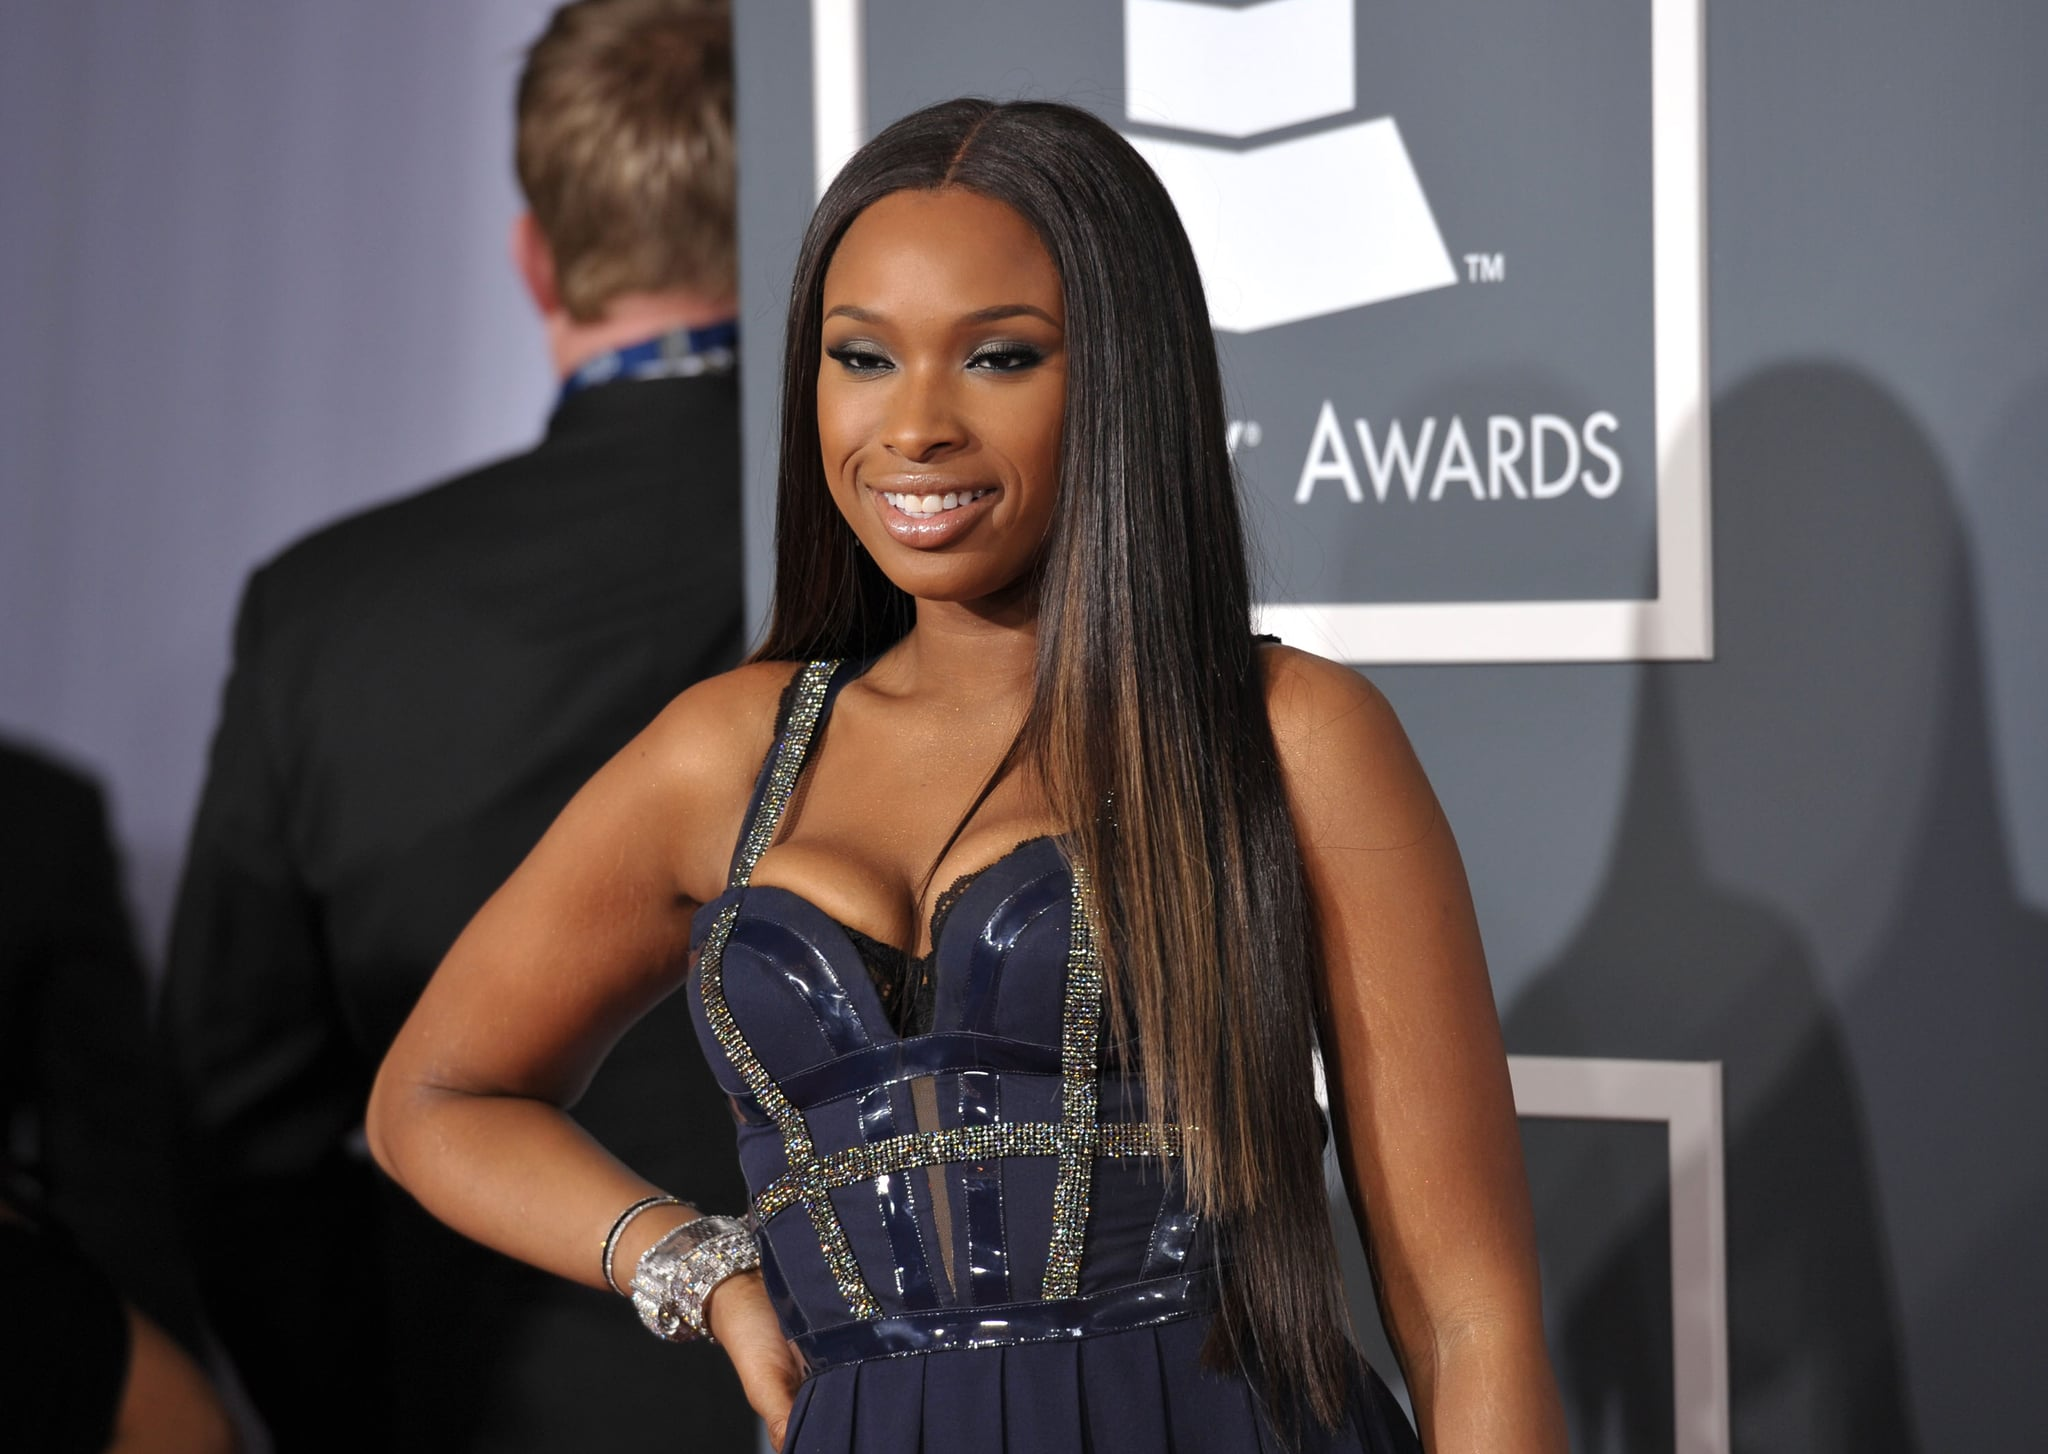 Jennifer Hudson's First Look of the Night at the Grammys